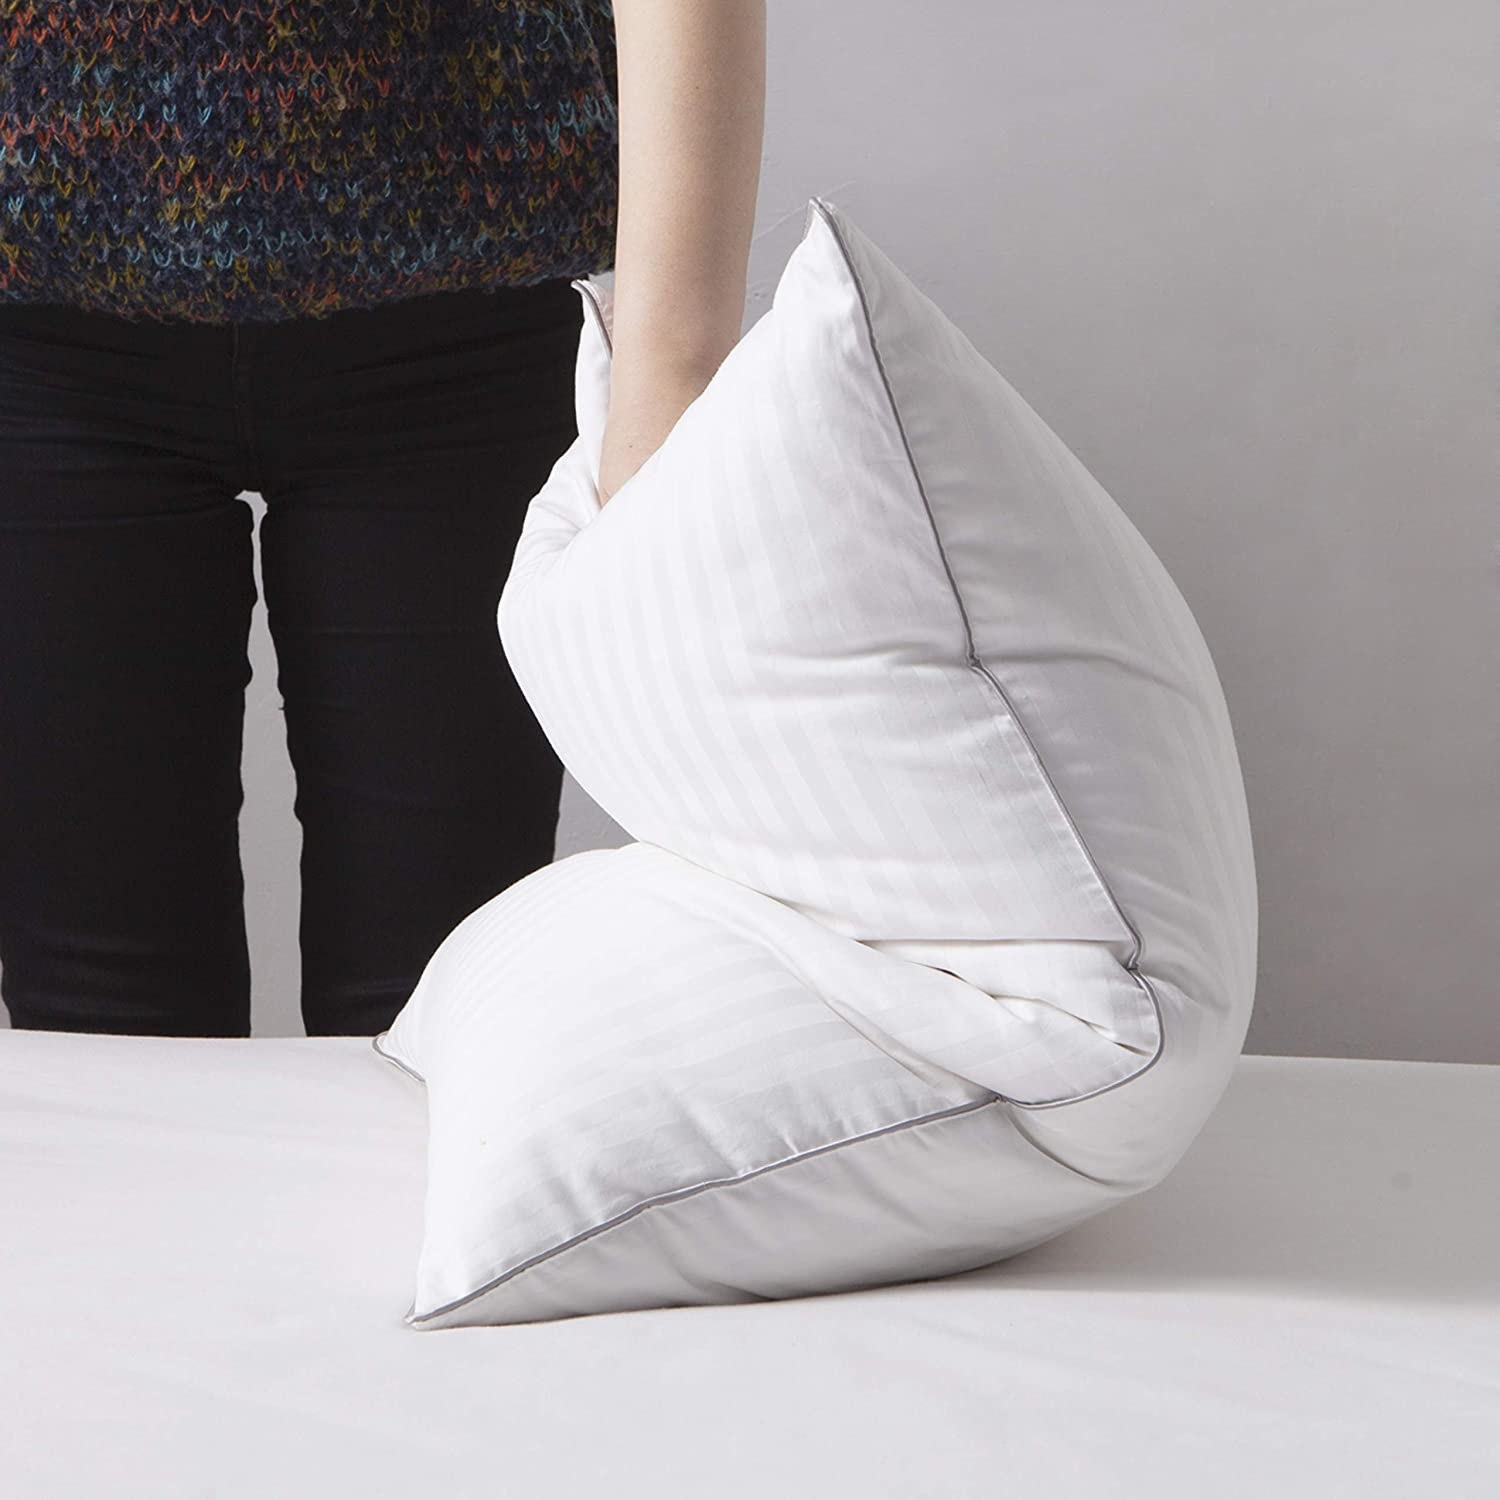 L LOVSOUL Goose Down Pillow,White Down Pillow Queen Size Pillow for Sleeping 1000 Thread Count 100% Egyptian Cotton Cover-20x28Inches